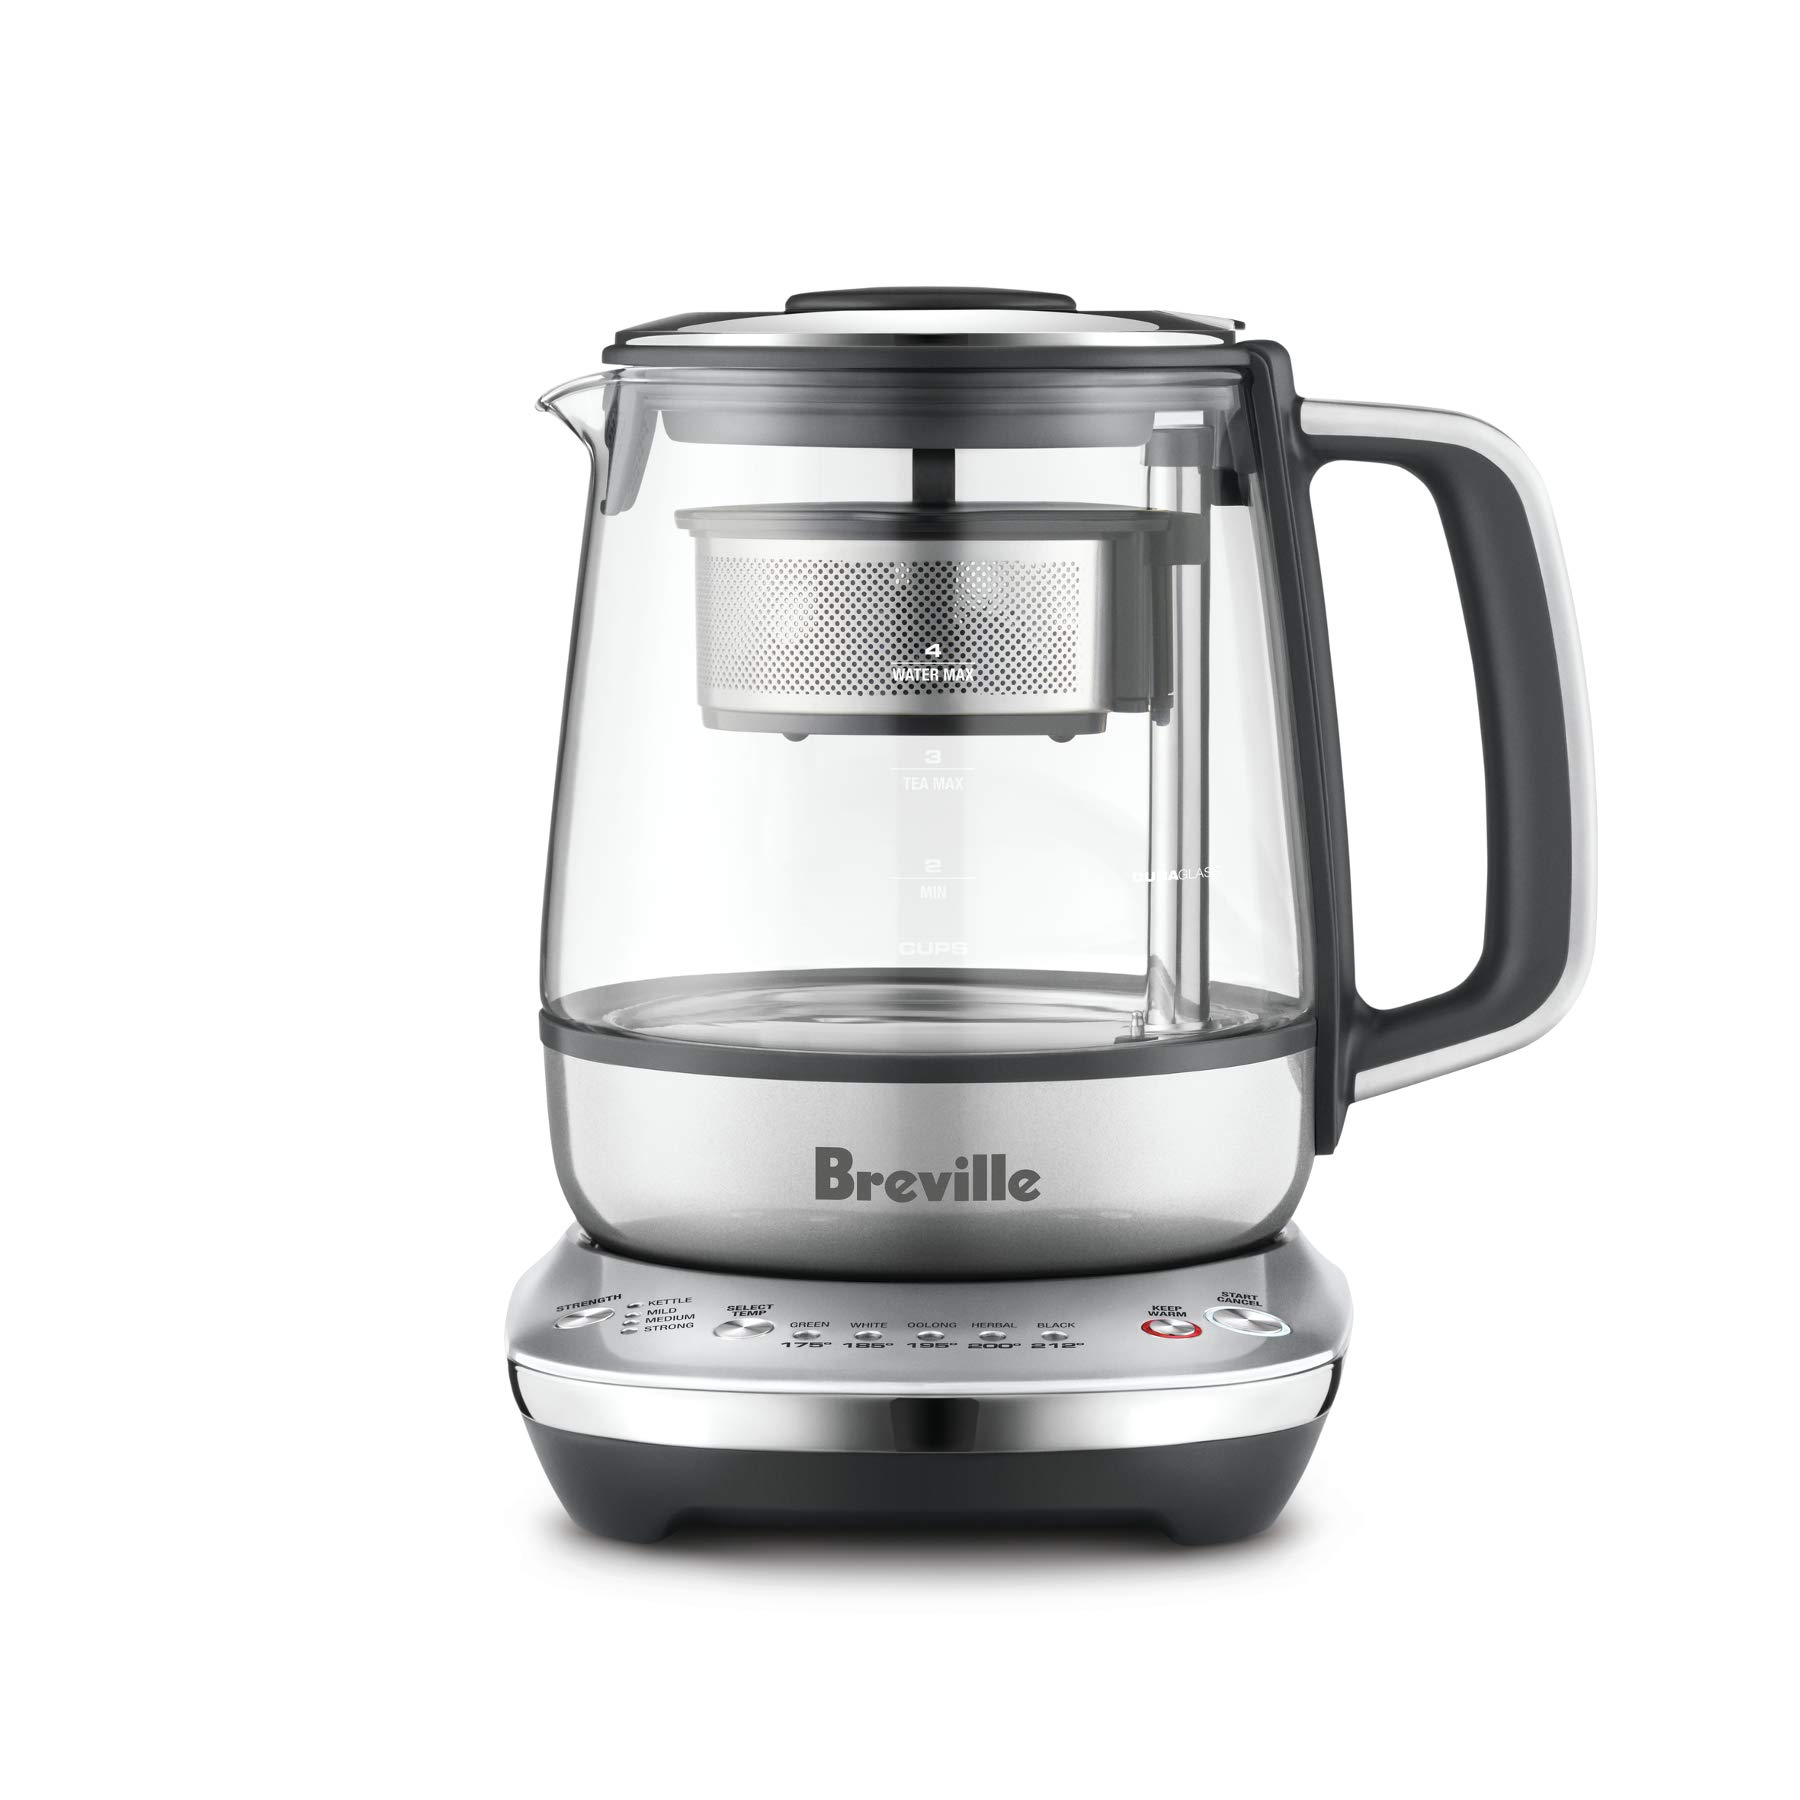 Breville Maker967 Tea Maker, 11.8 x 10.2 x 7.8 inches, Silver by Breville